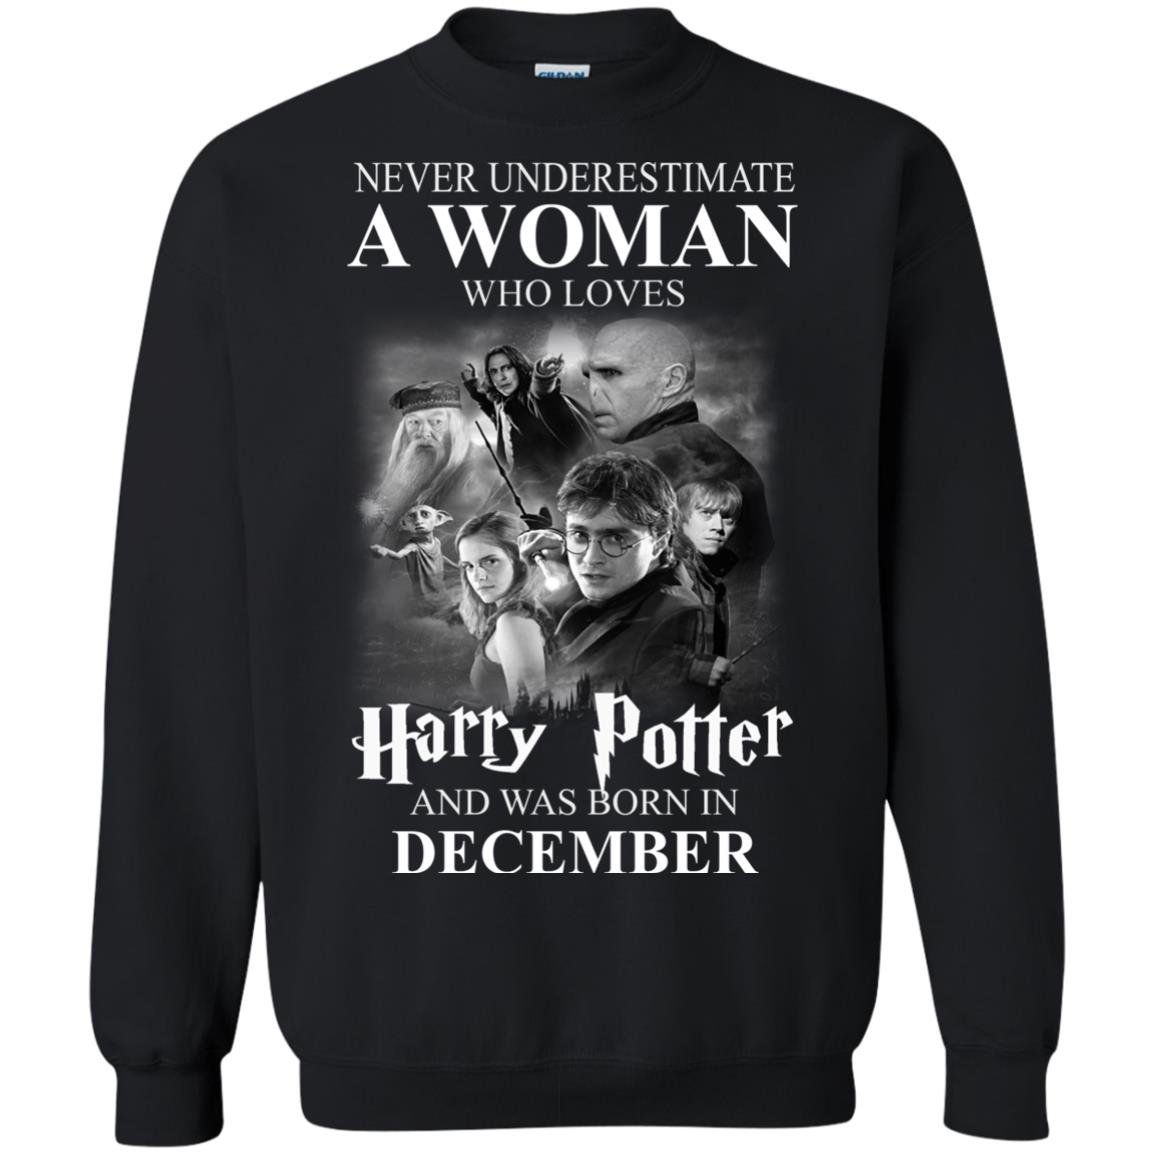 image 1032 - Never underestimate A woman who watches Harry Potter and was born in December shirt